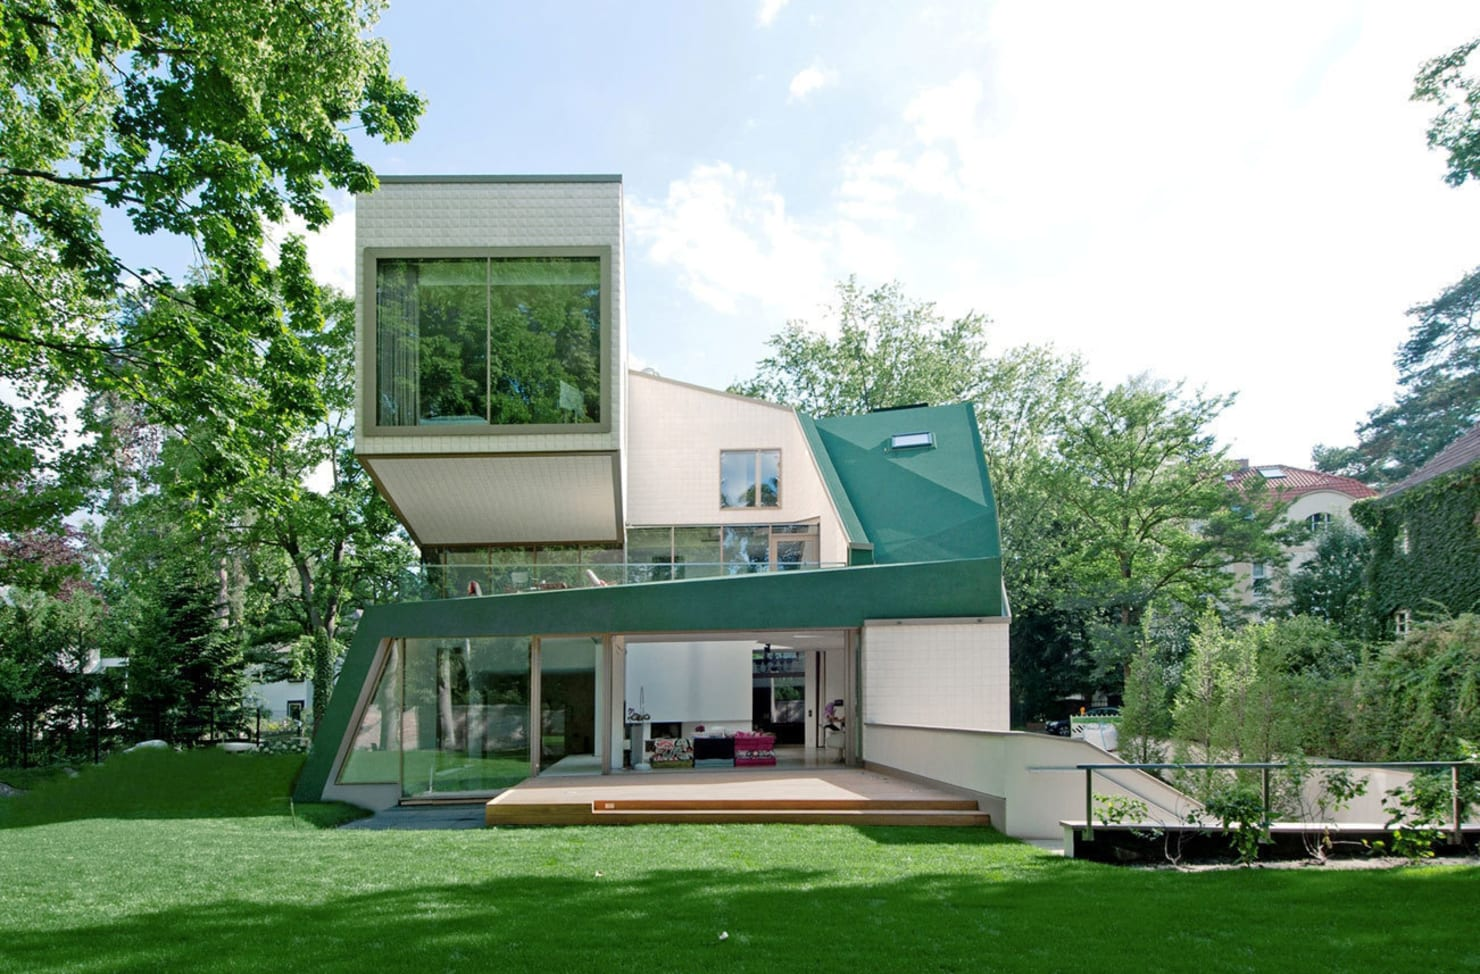 5 of the most oddly-shaped homes of 2016